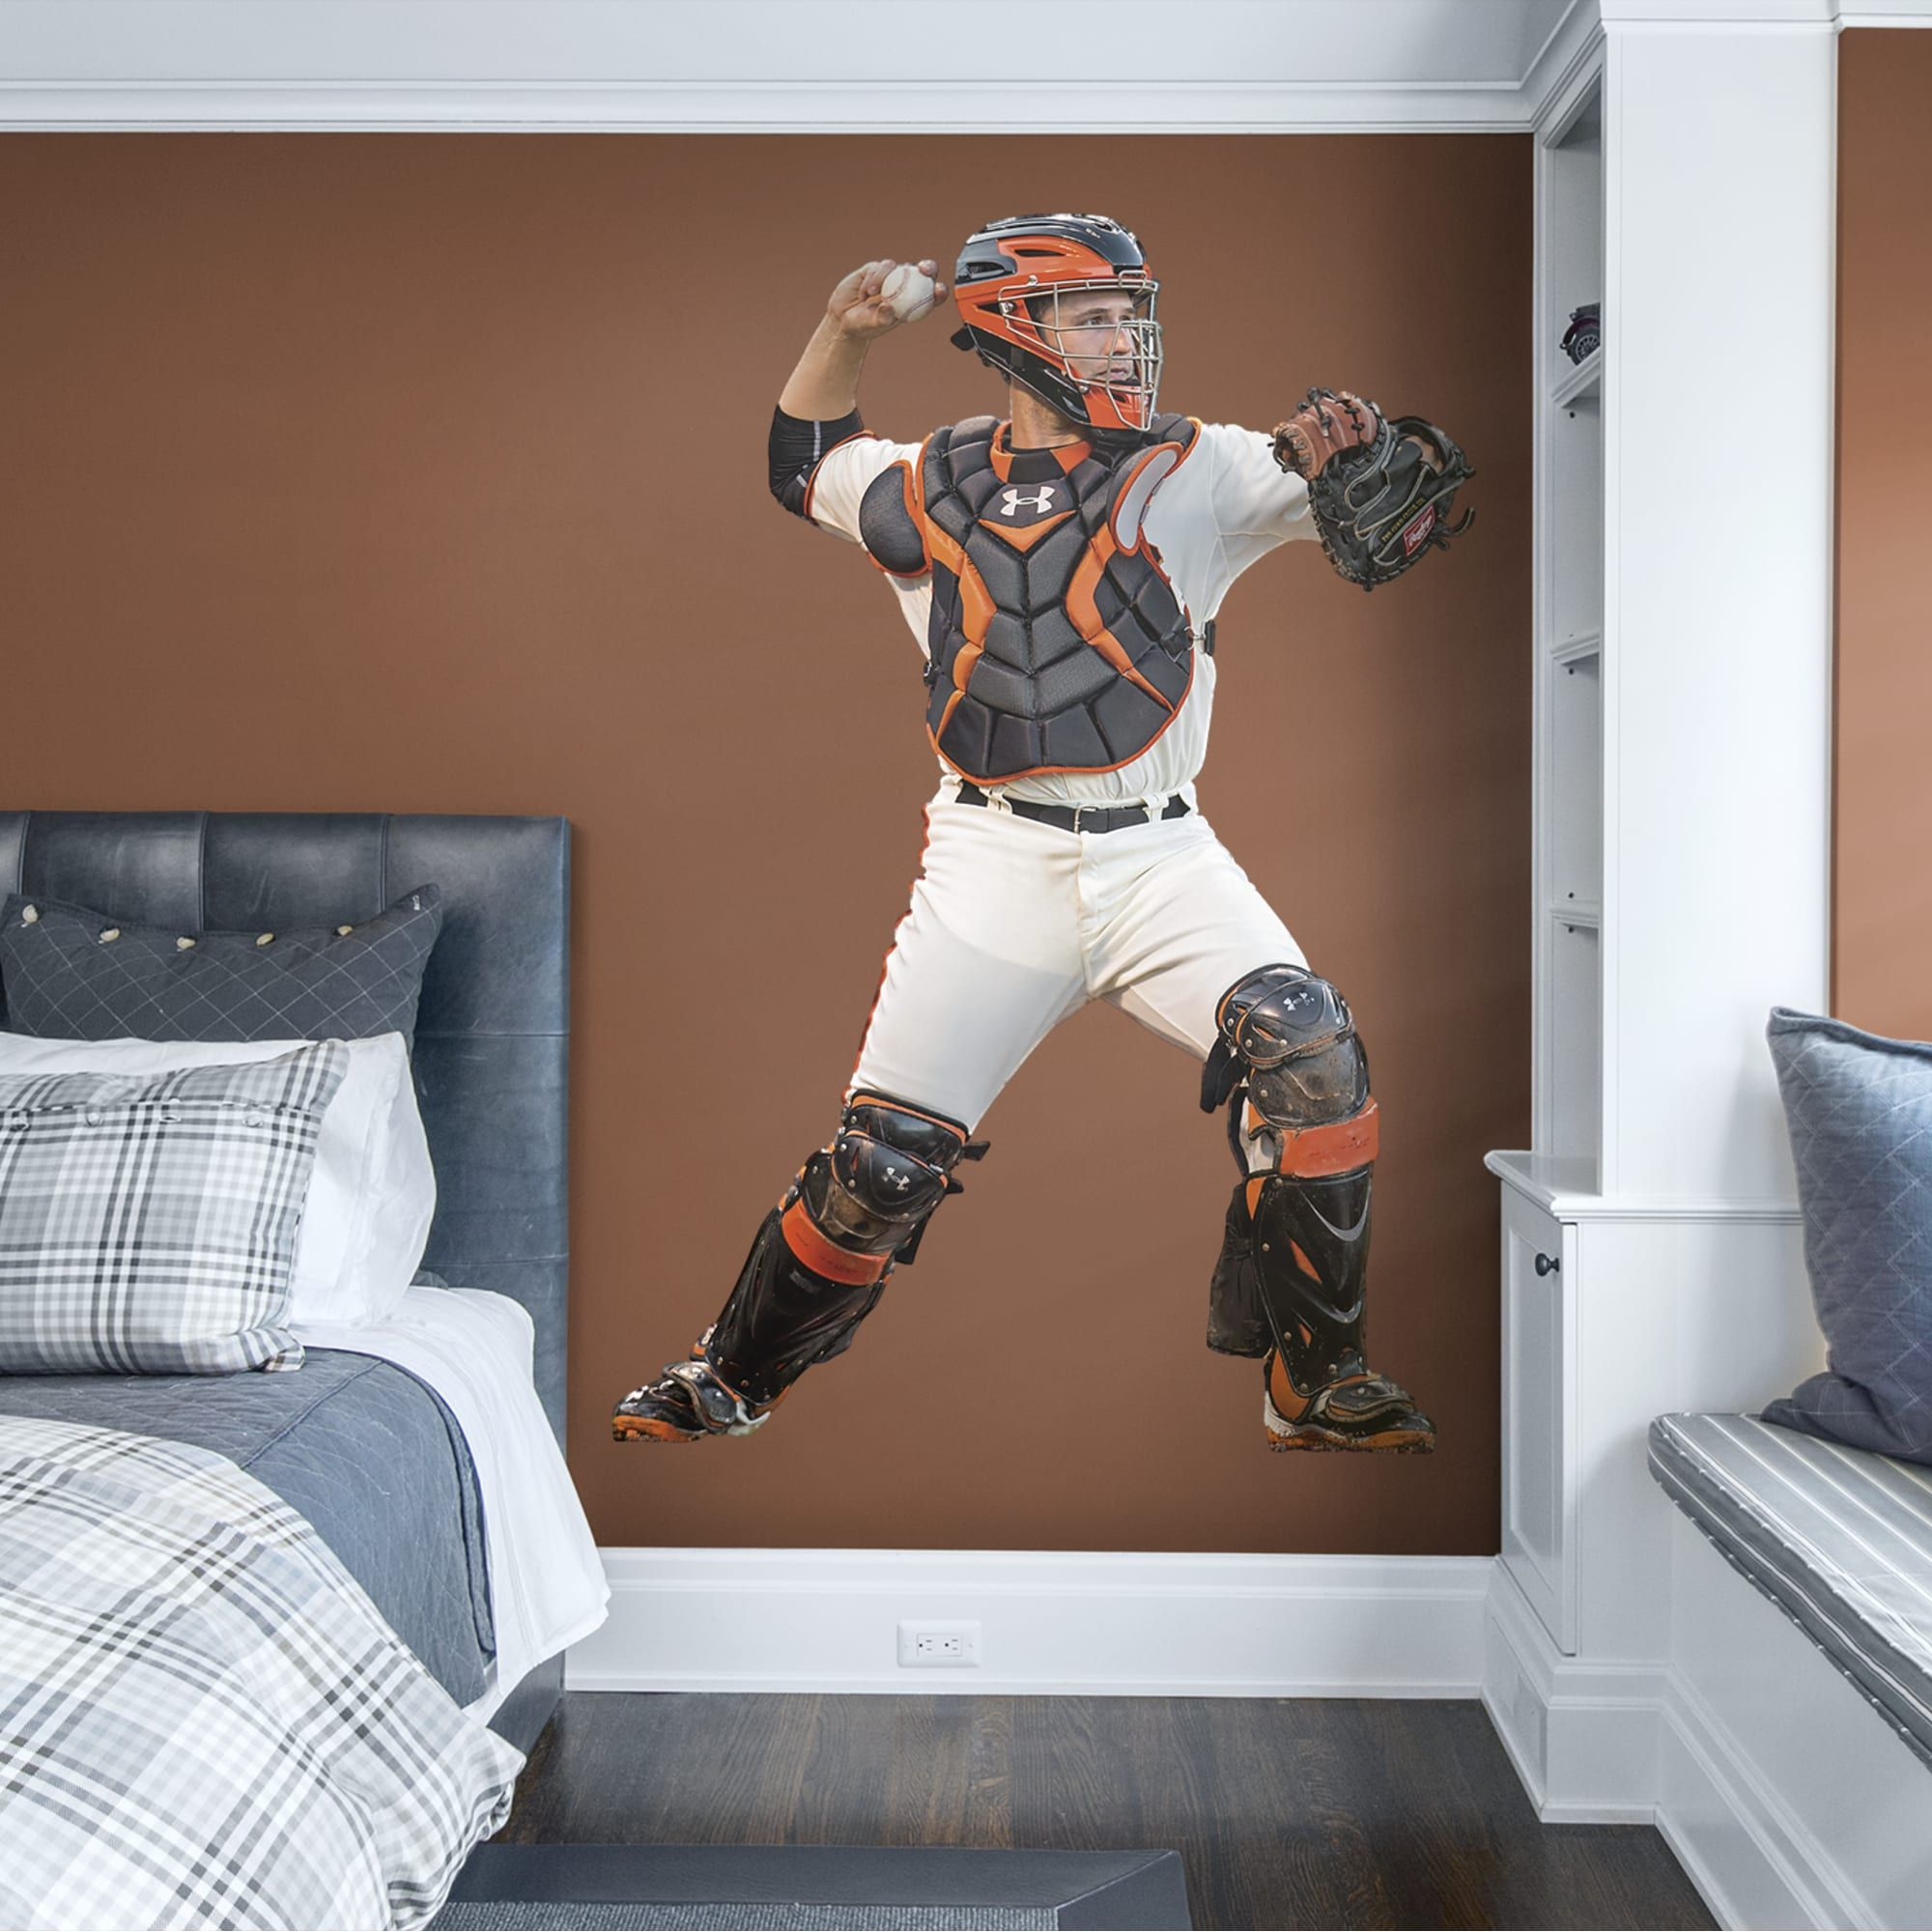 Buster Posey Catcher Life Size Officially Licensed Mlb